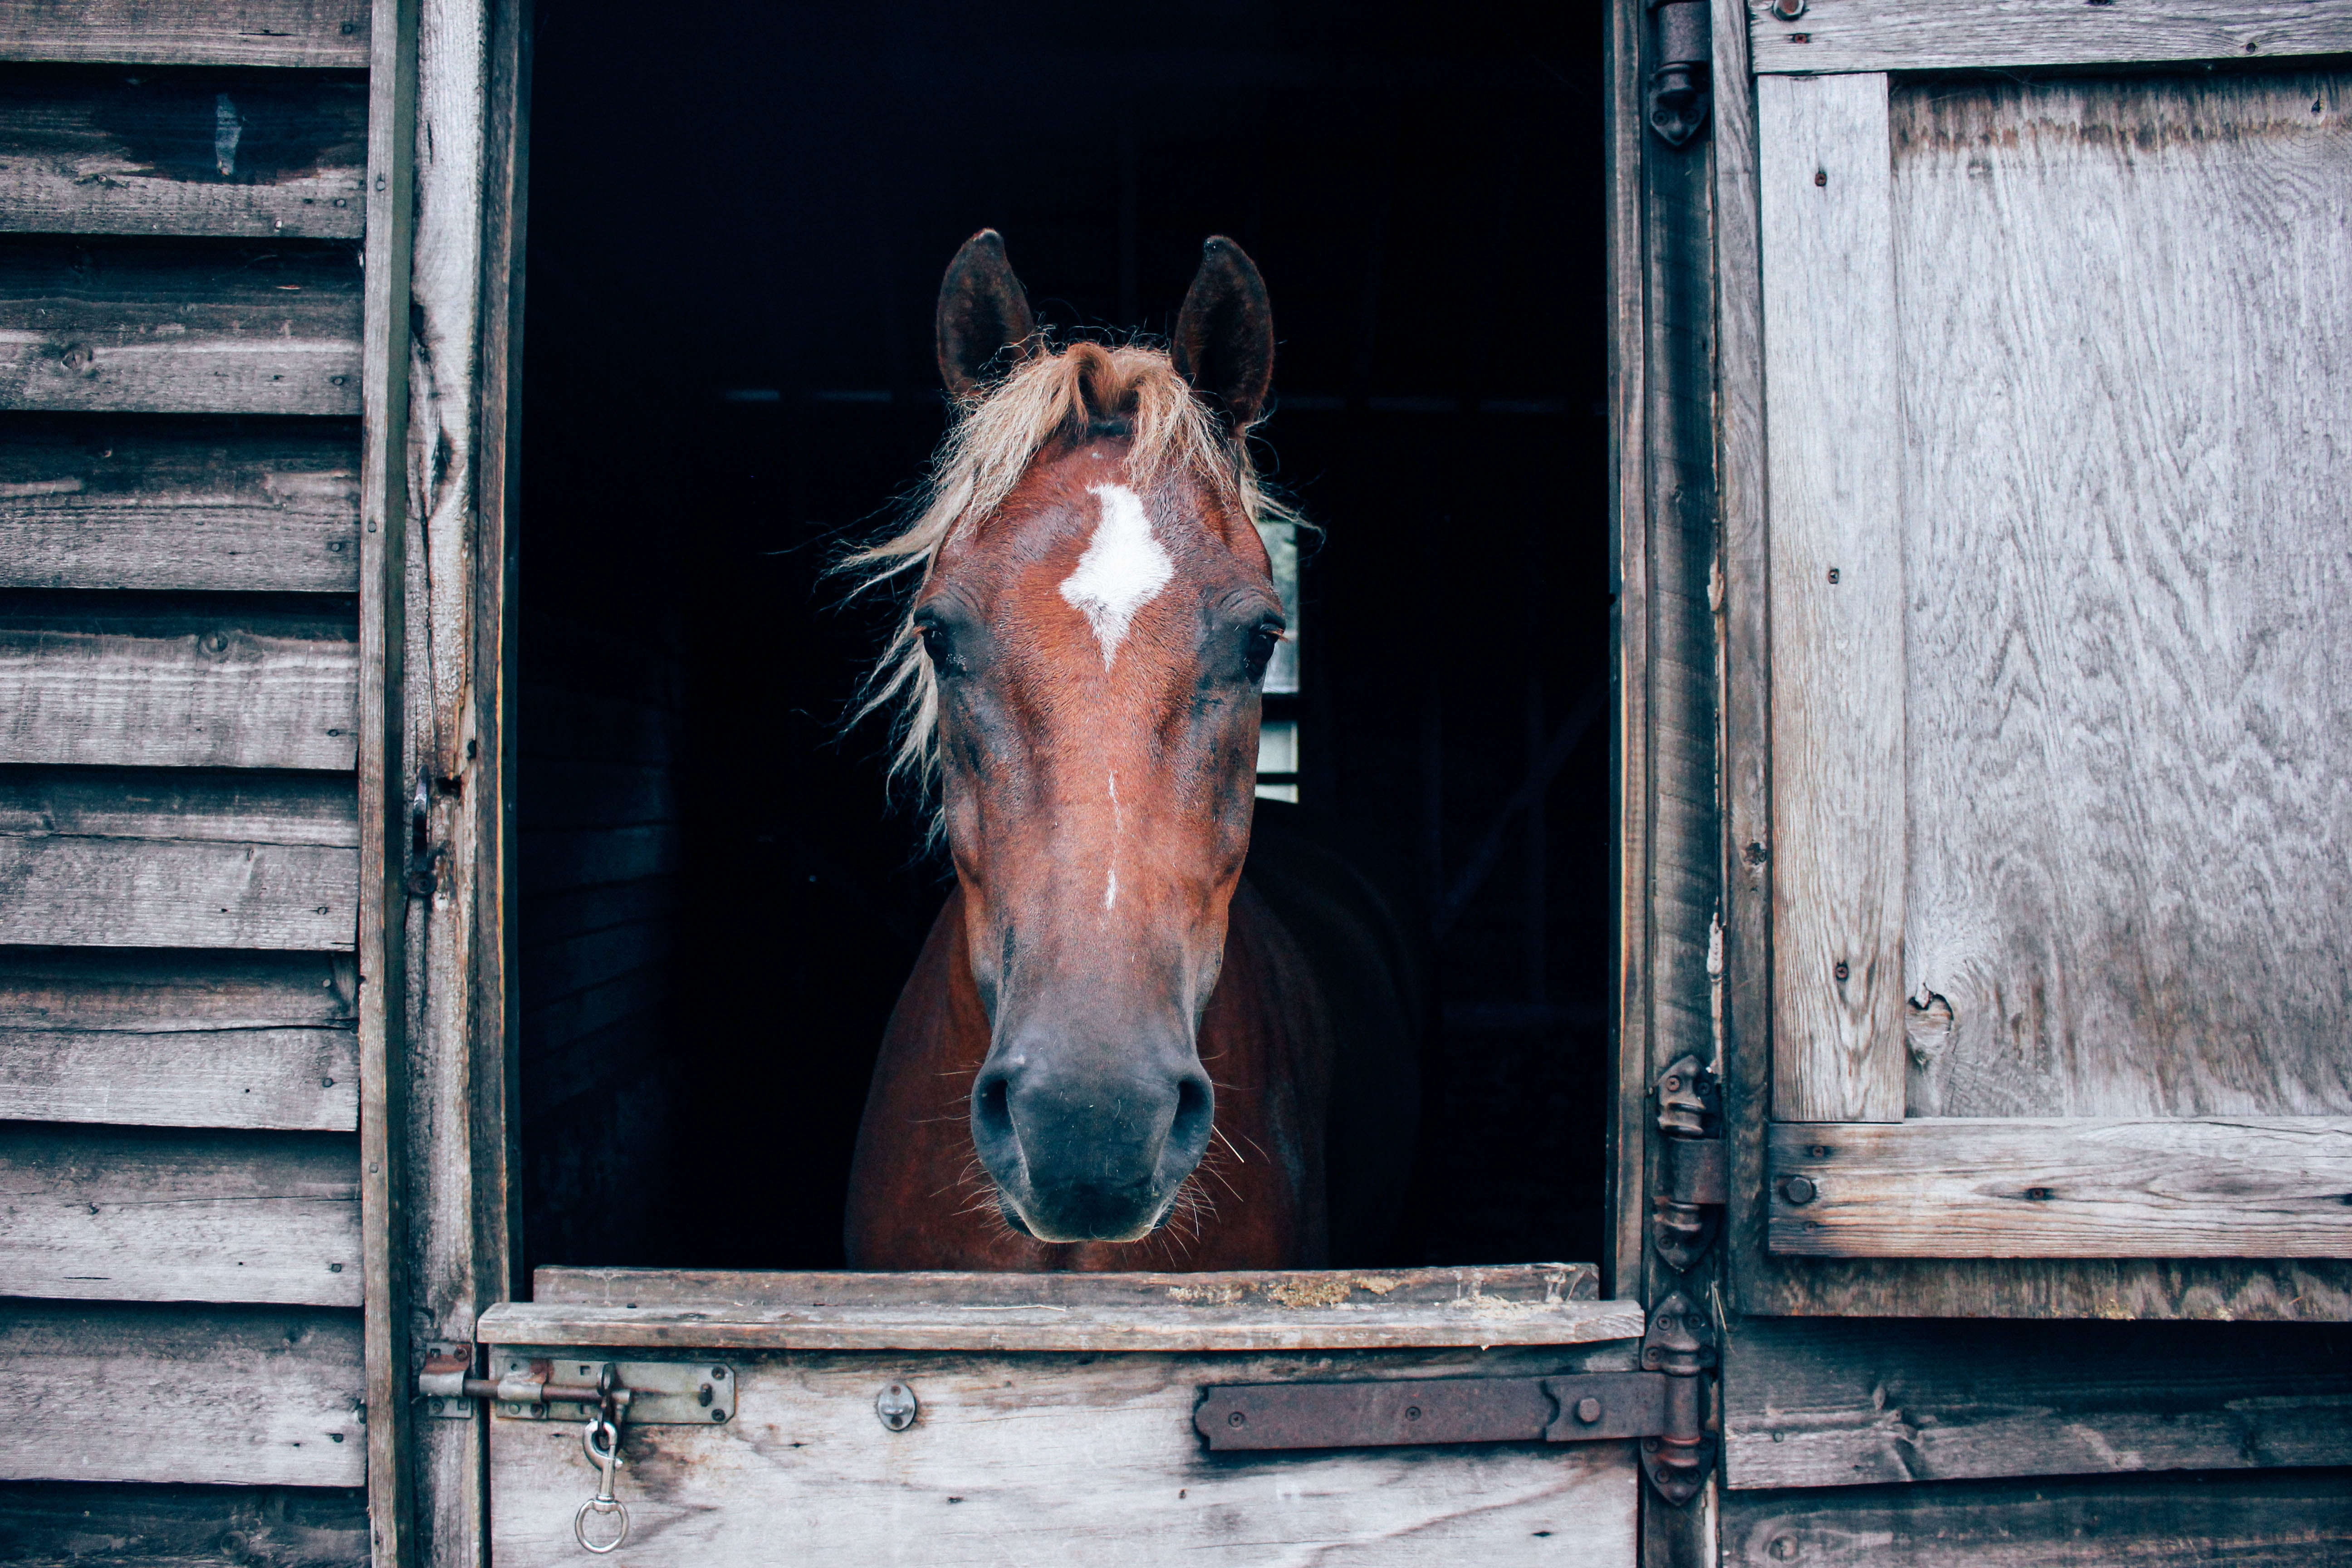 close-up photography of horse in barn